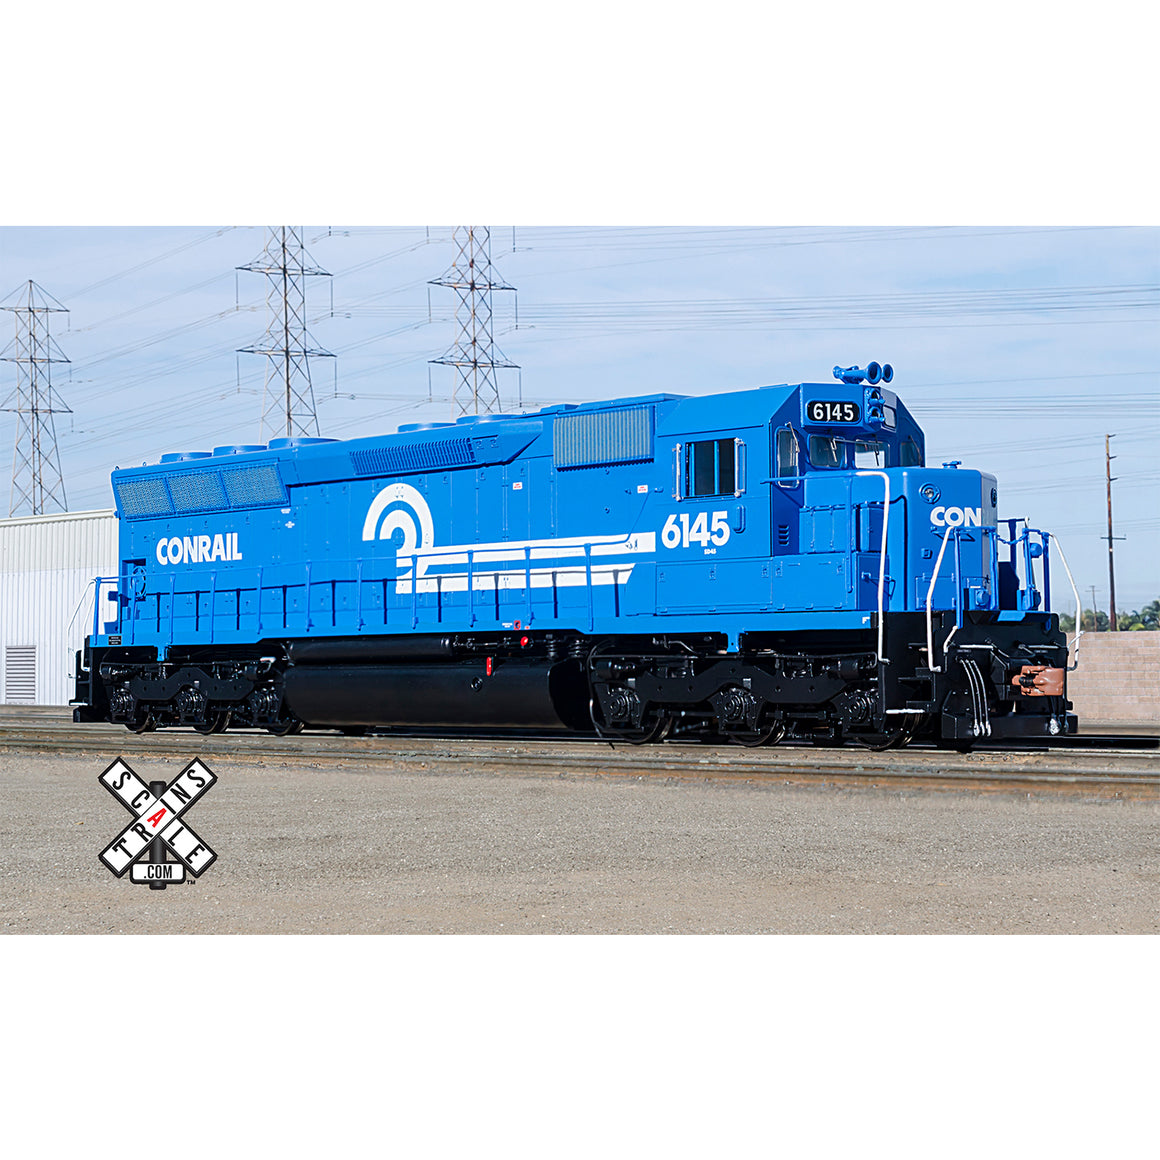 HO Scale: Rivet Counter - EMD SD45 - DCC & Sound - Conrail